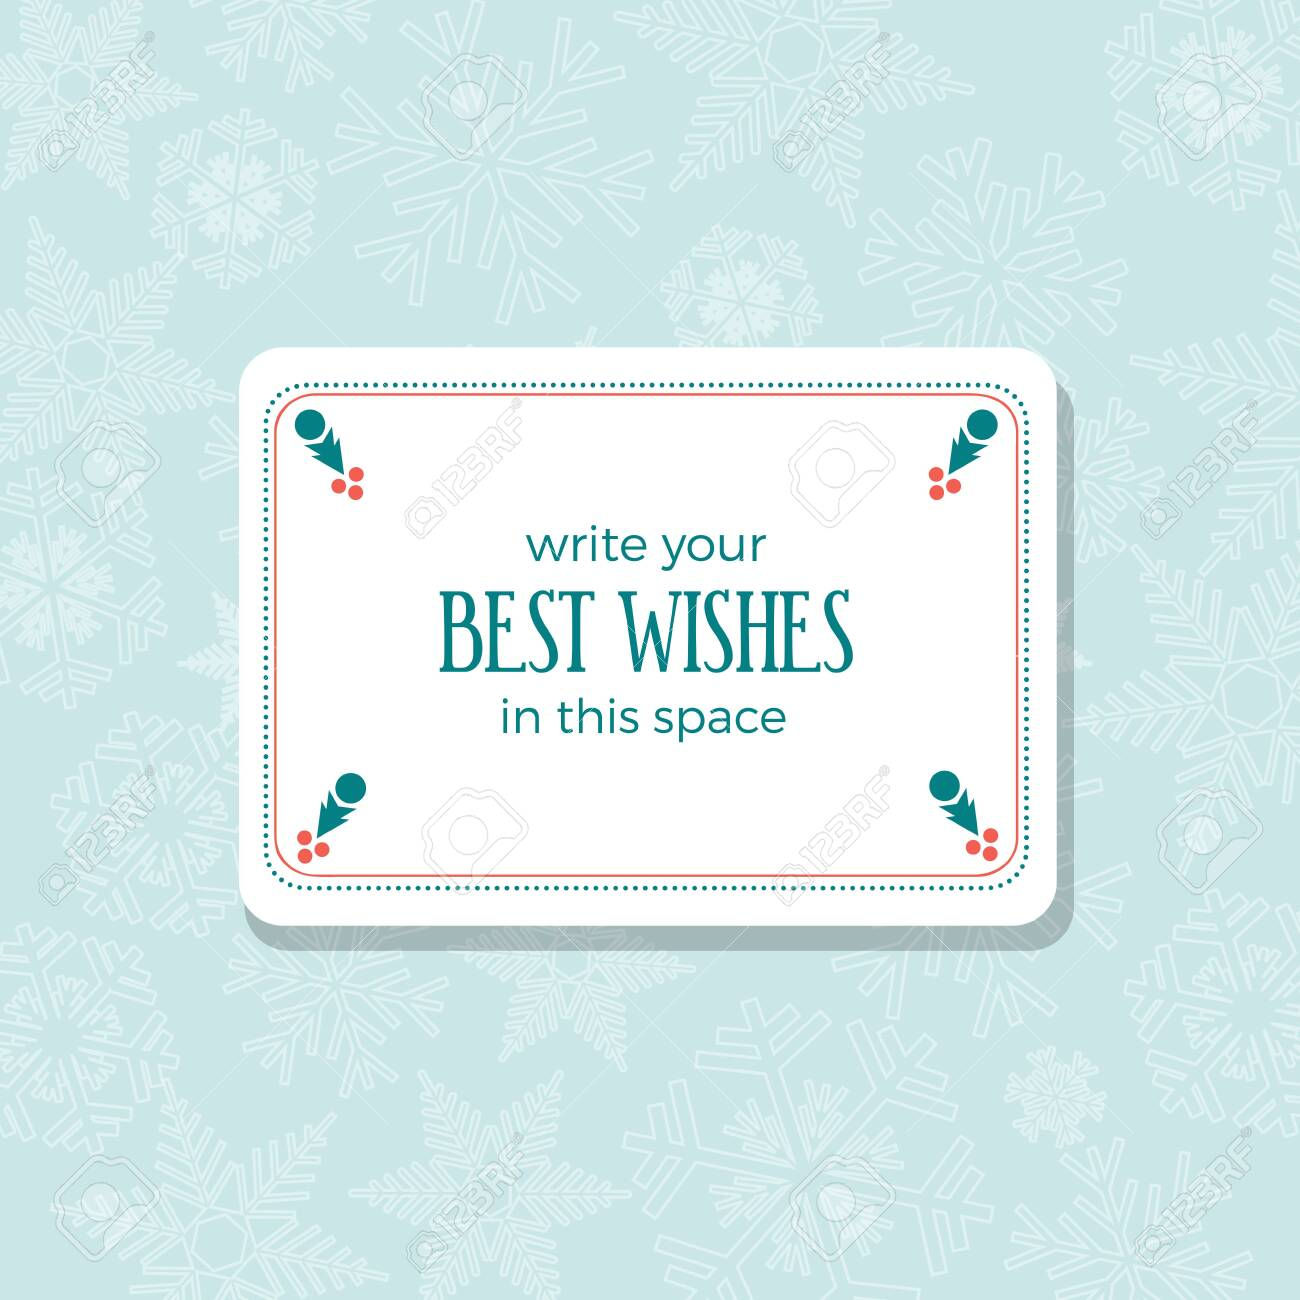 Insert best wishes in empty frame. Merry Christmas and Happy New Year. Greeting, Invitation or Menu cover. Vector background - 130352784